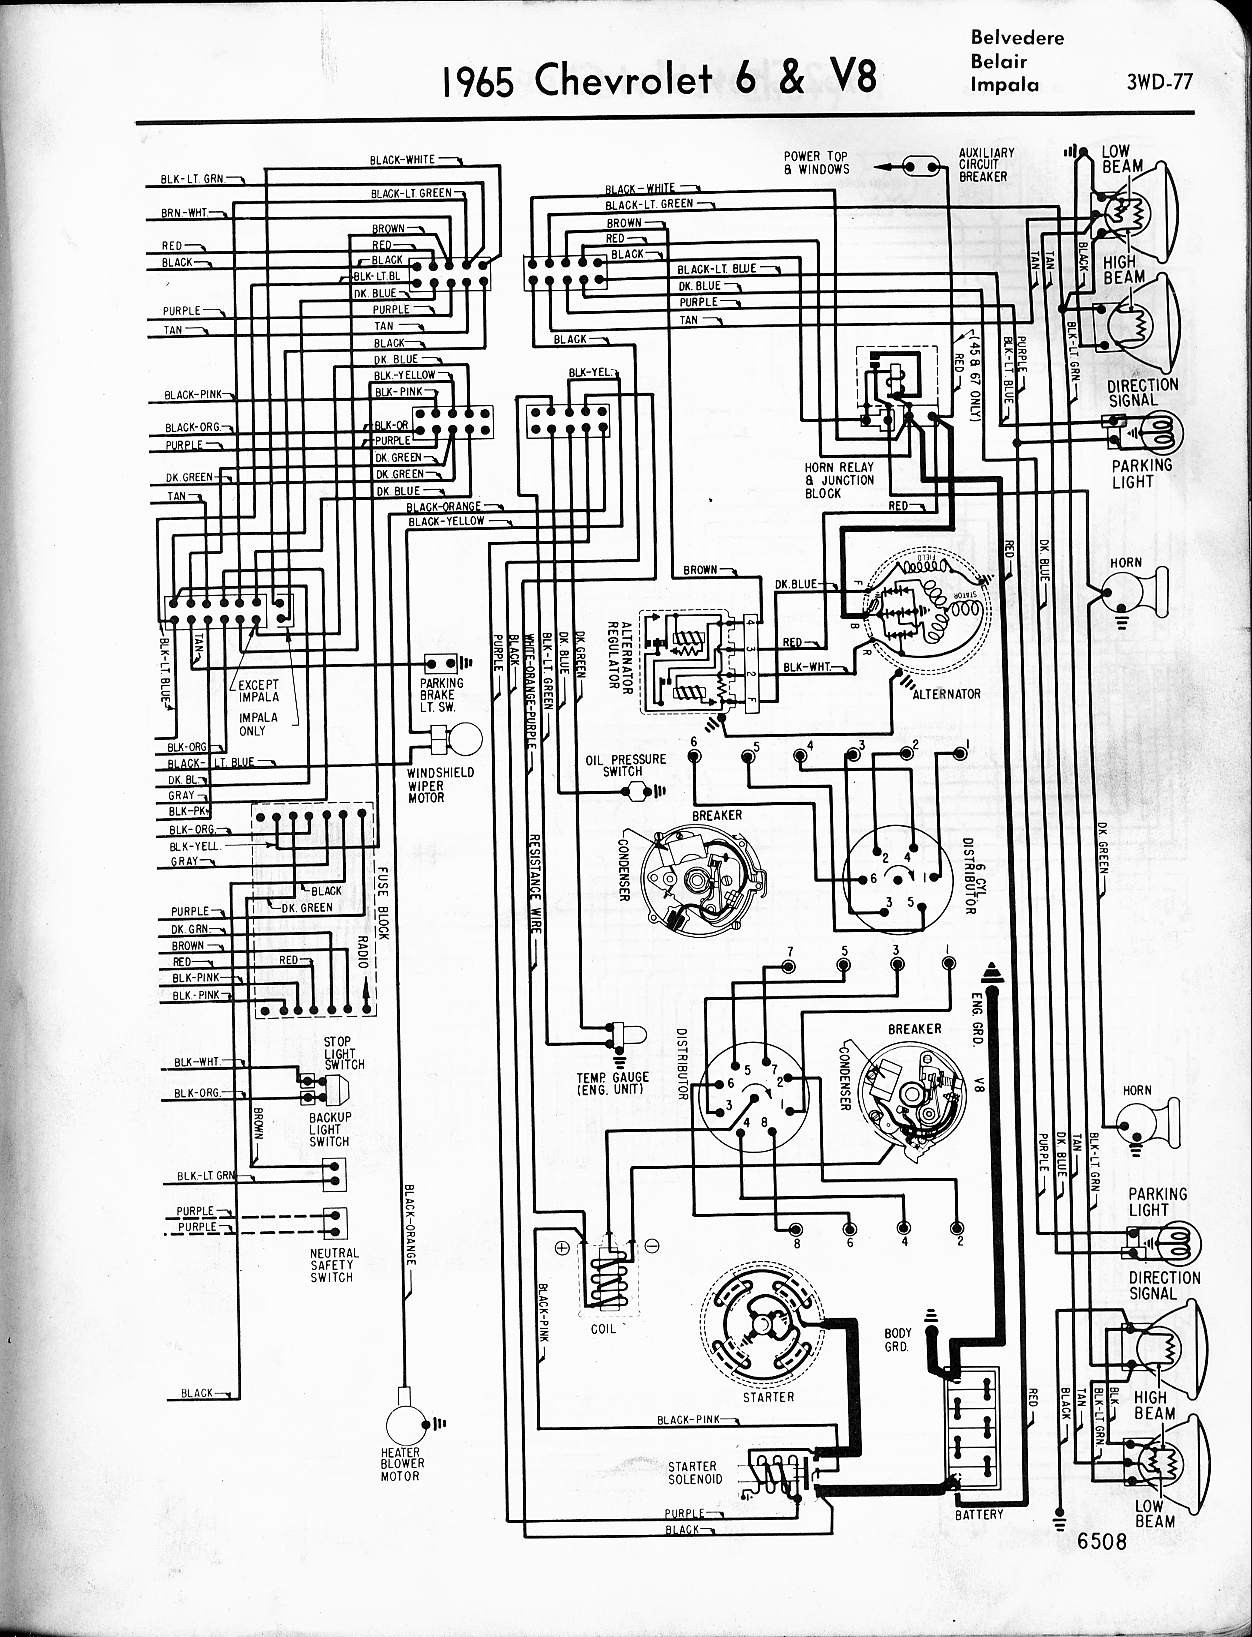 57 Chevy Fuse Box Diagram Wiring Library 2002 Silverado Malibu Besides 1961 Impala Rh Onzegroup Co